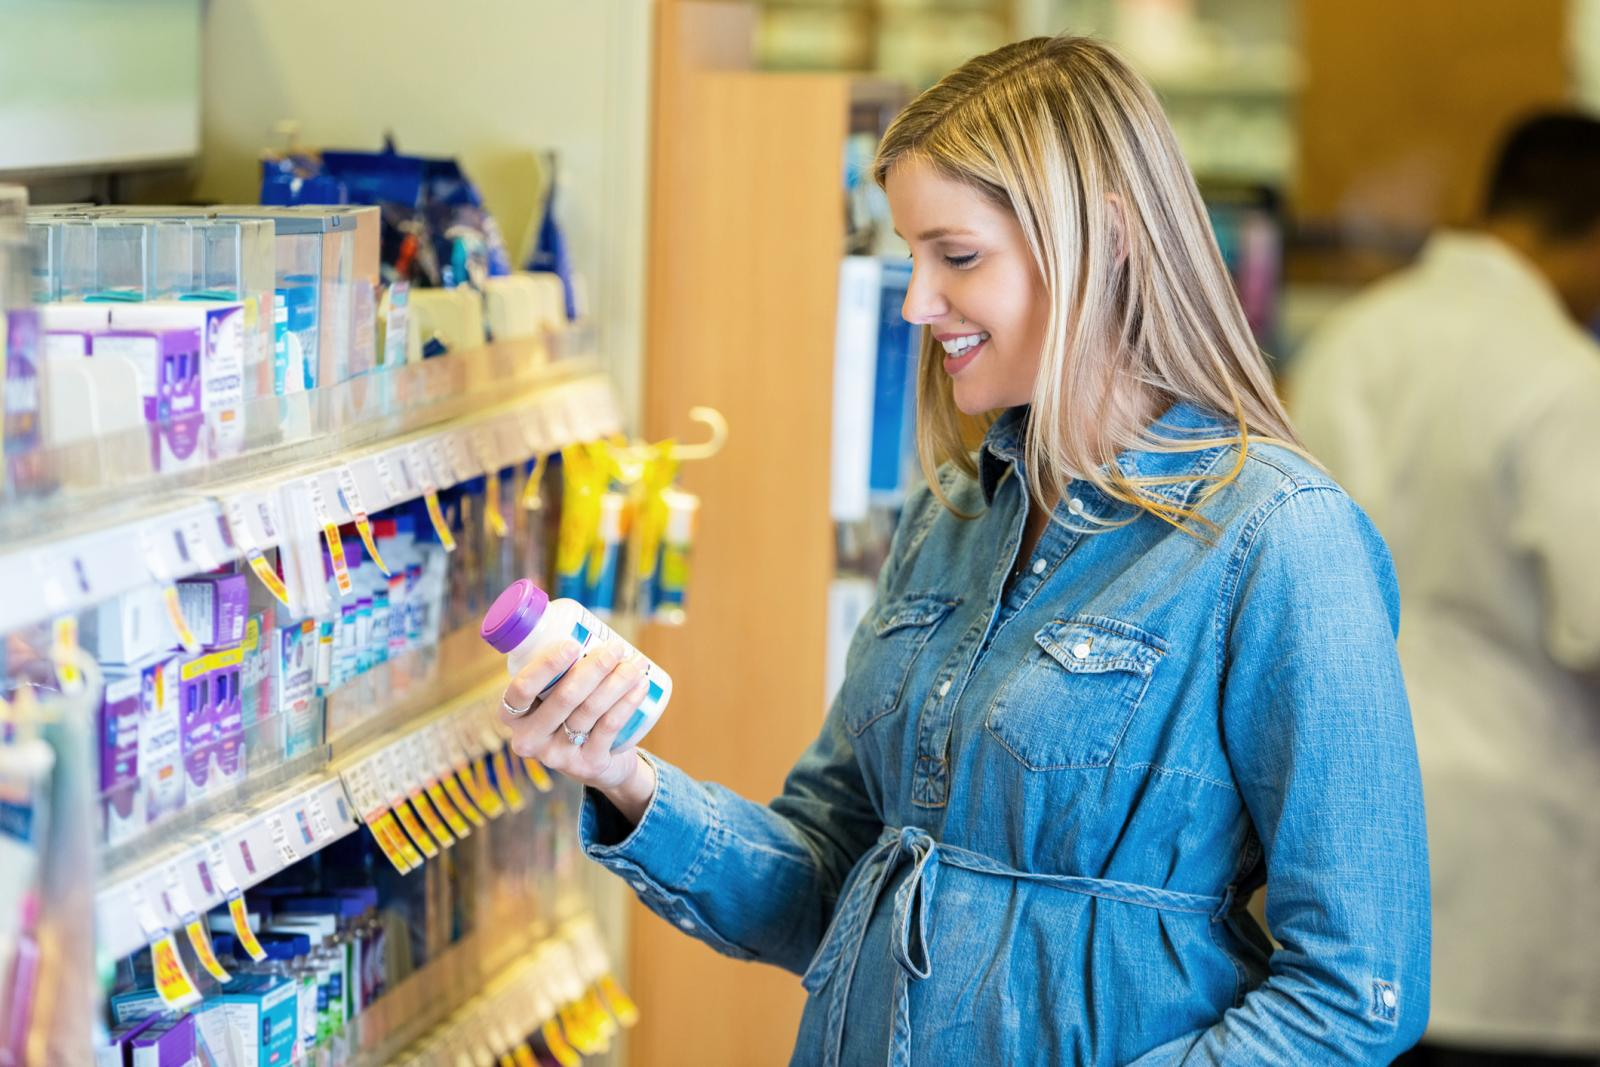 Pregnant woman reading prenatal vitamin label in pharmacy